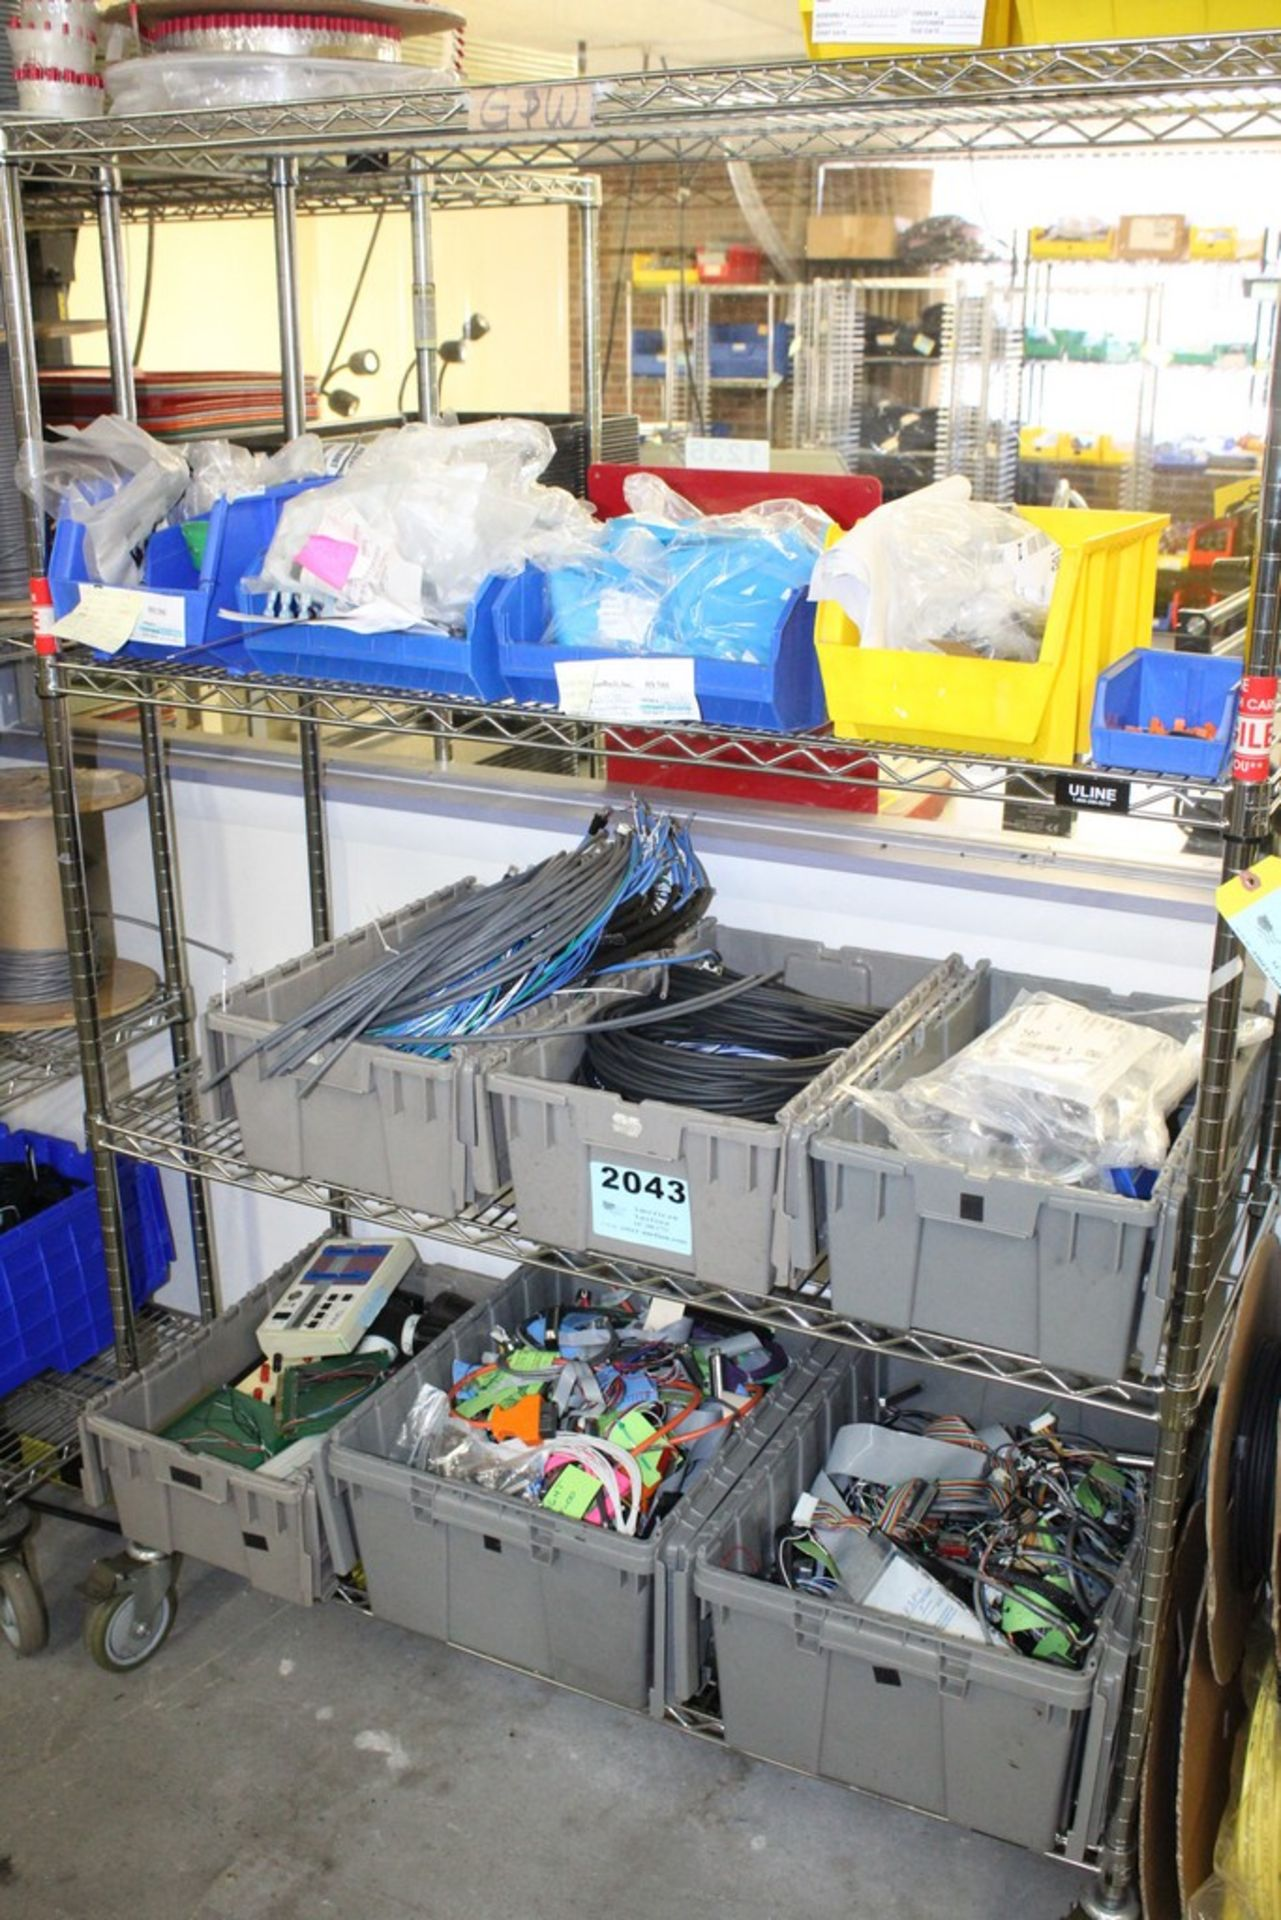 Lot 2043 - WIRE AND COMPONENTS ON SHELVES, NO SHELVING